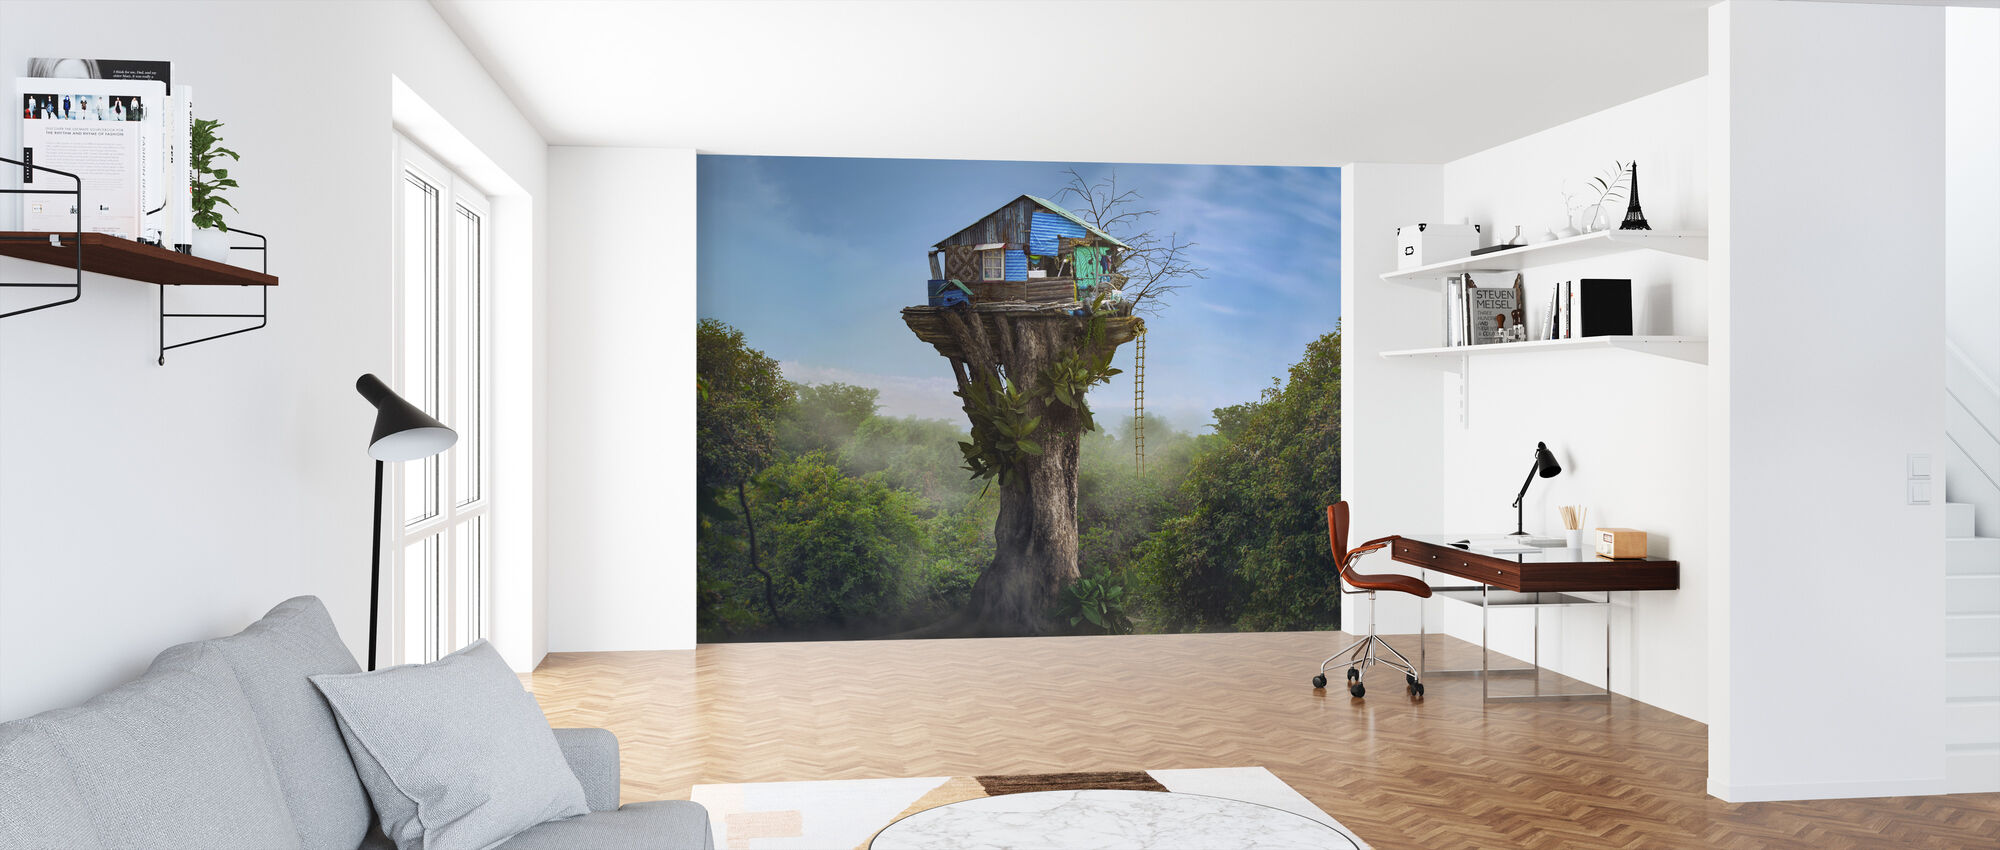 House in the Sky - Wallpaper - Office